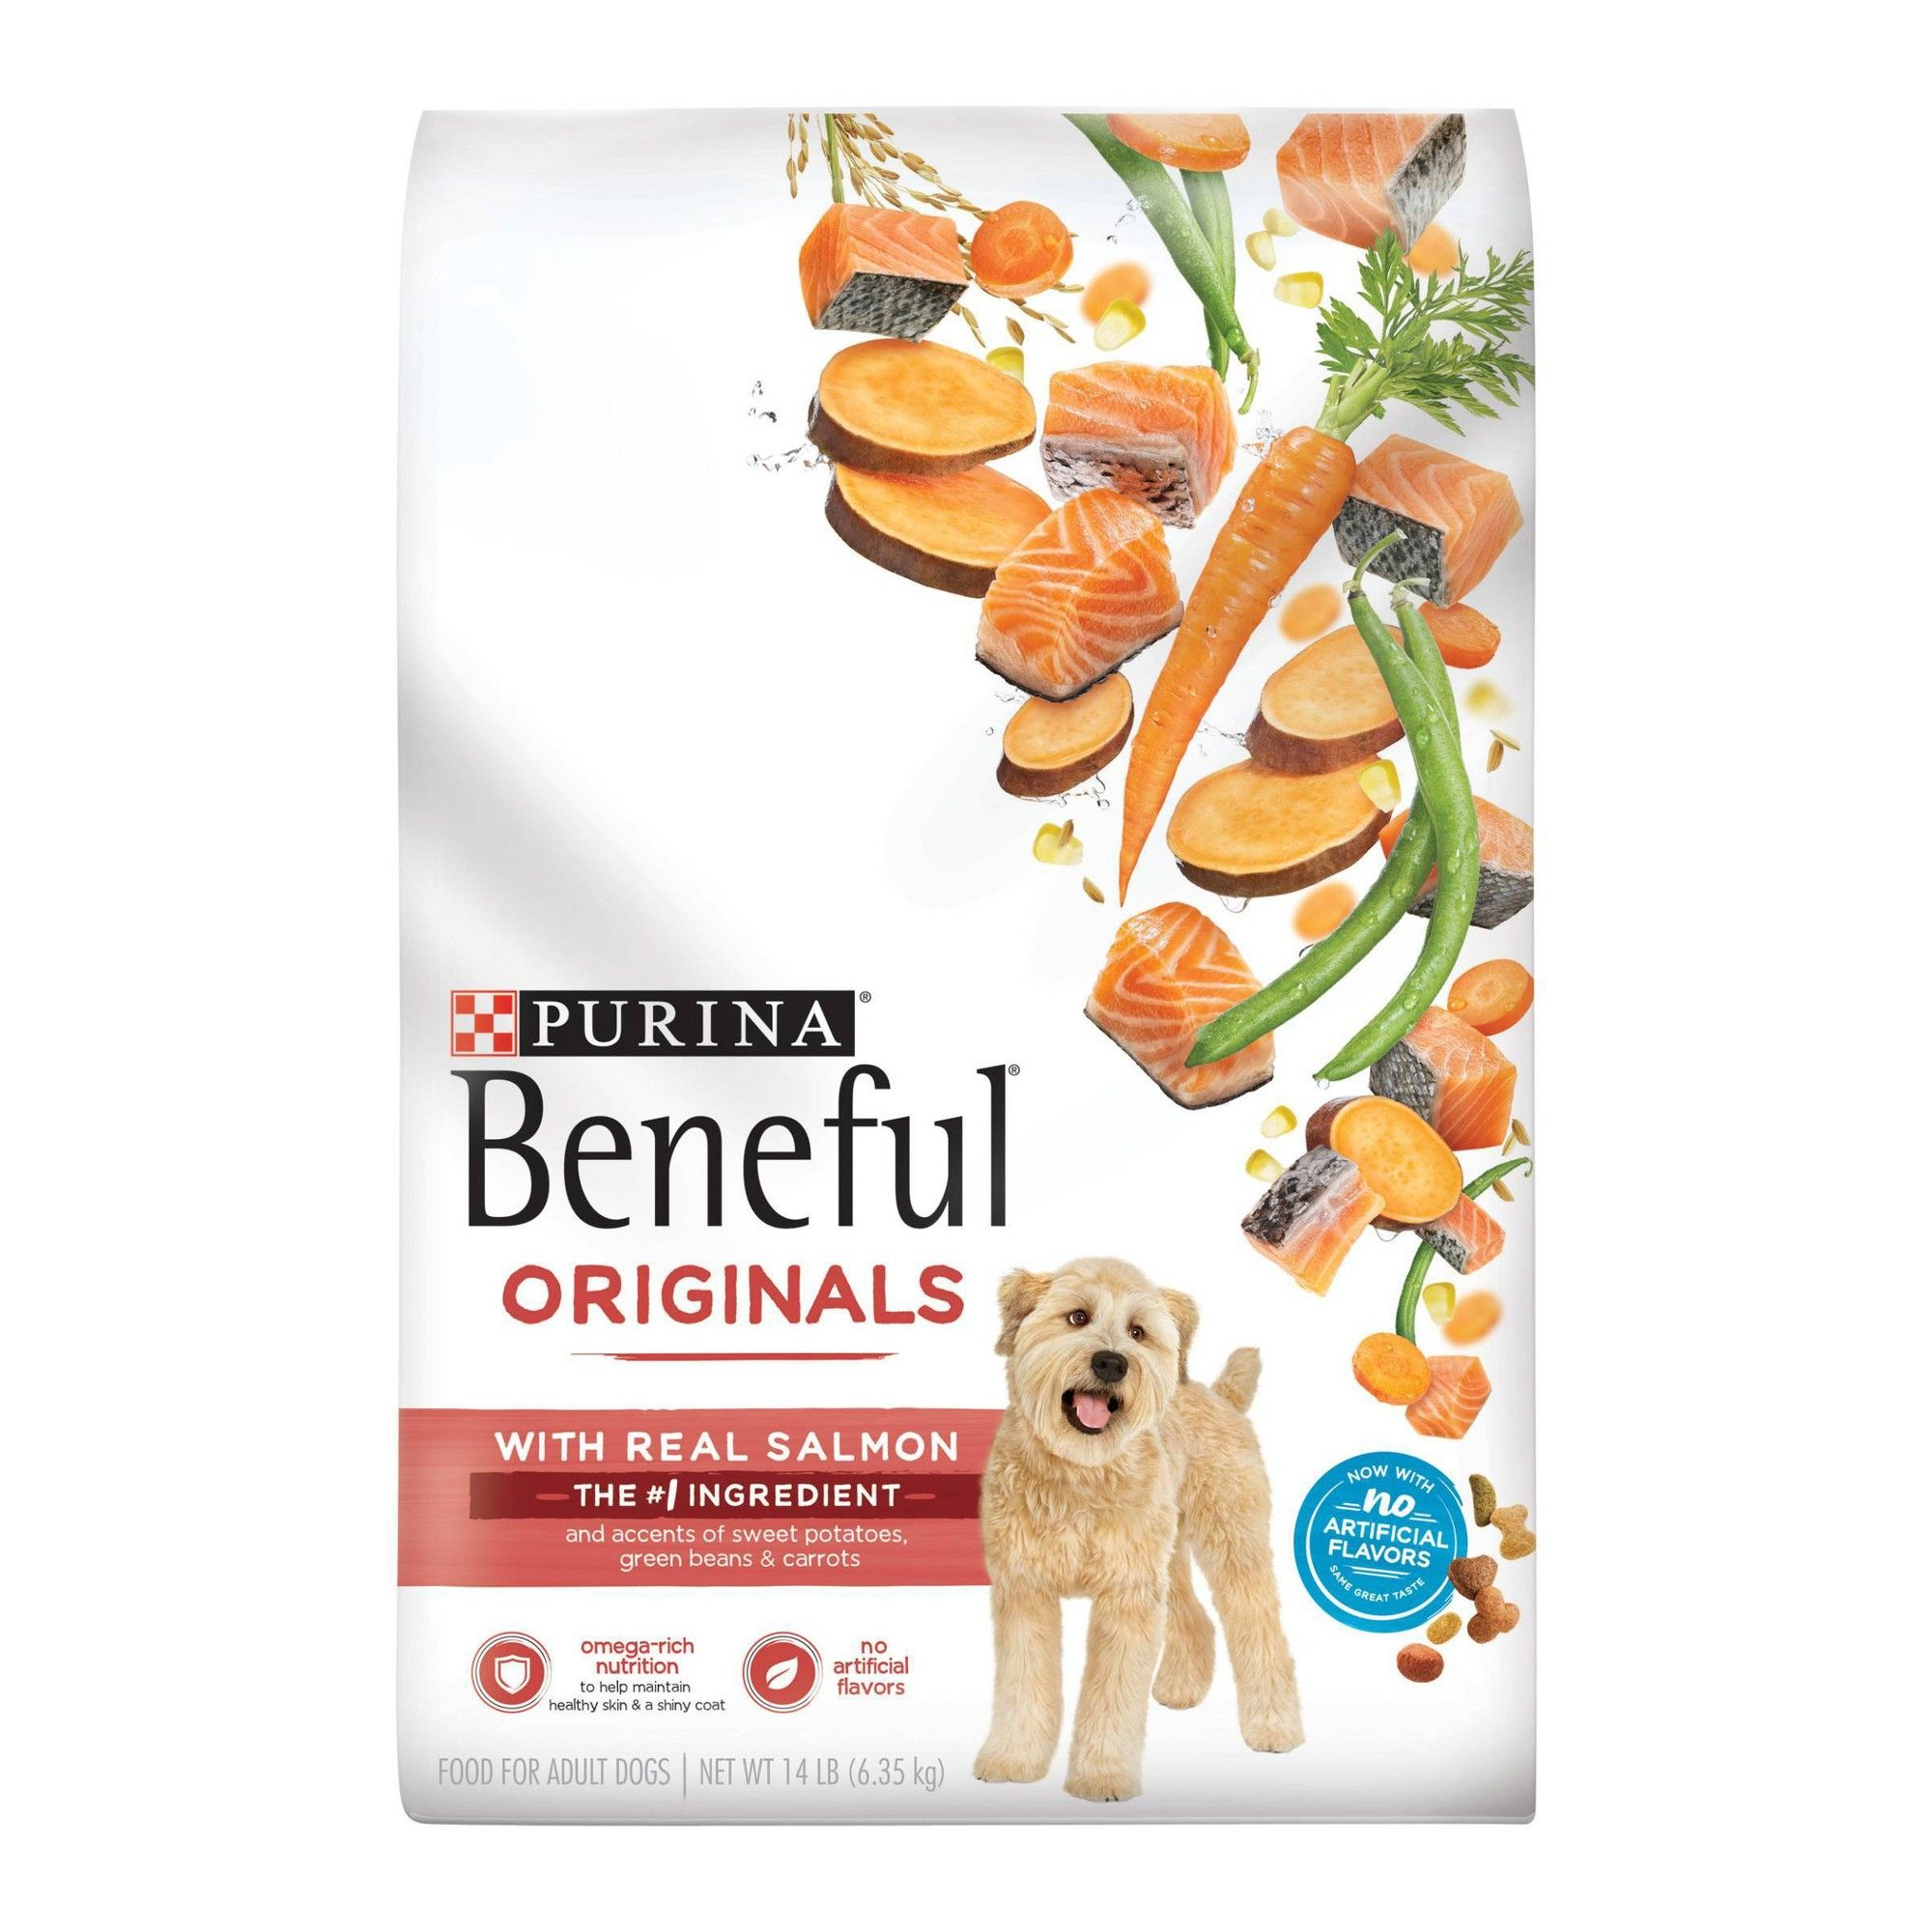 Purina Beneful Dry Dog Food Originals Natural Salmon With Sweet